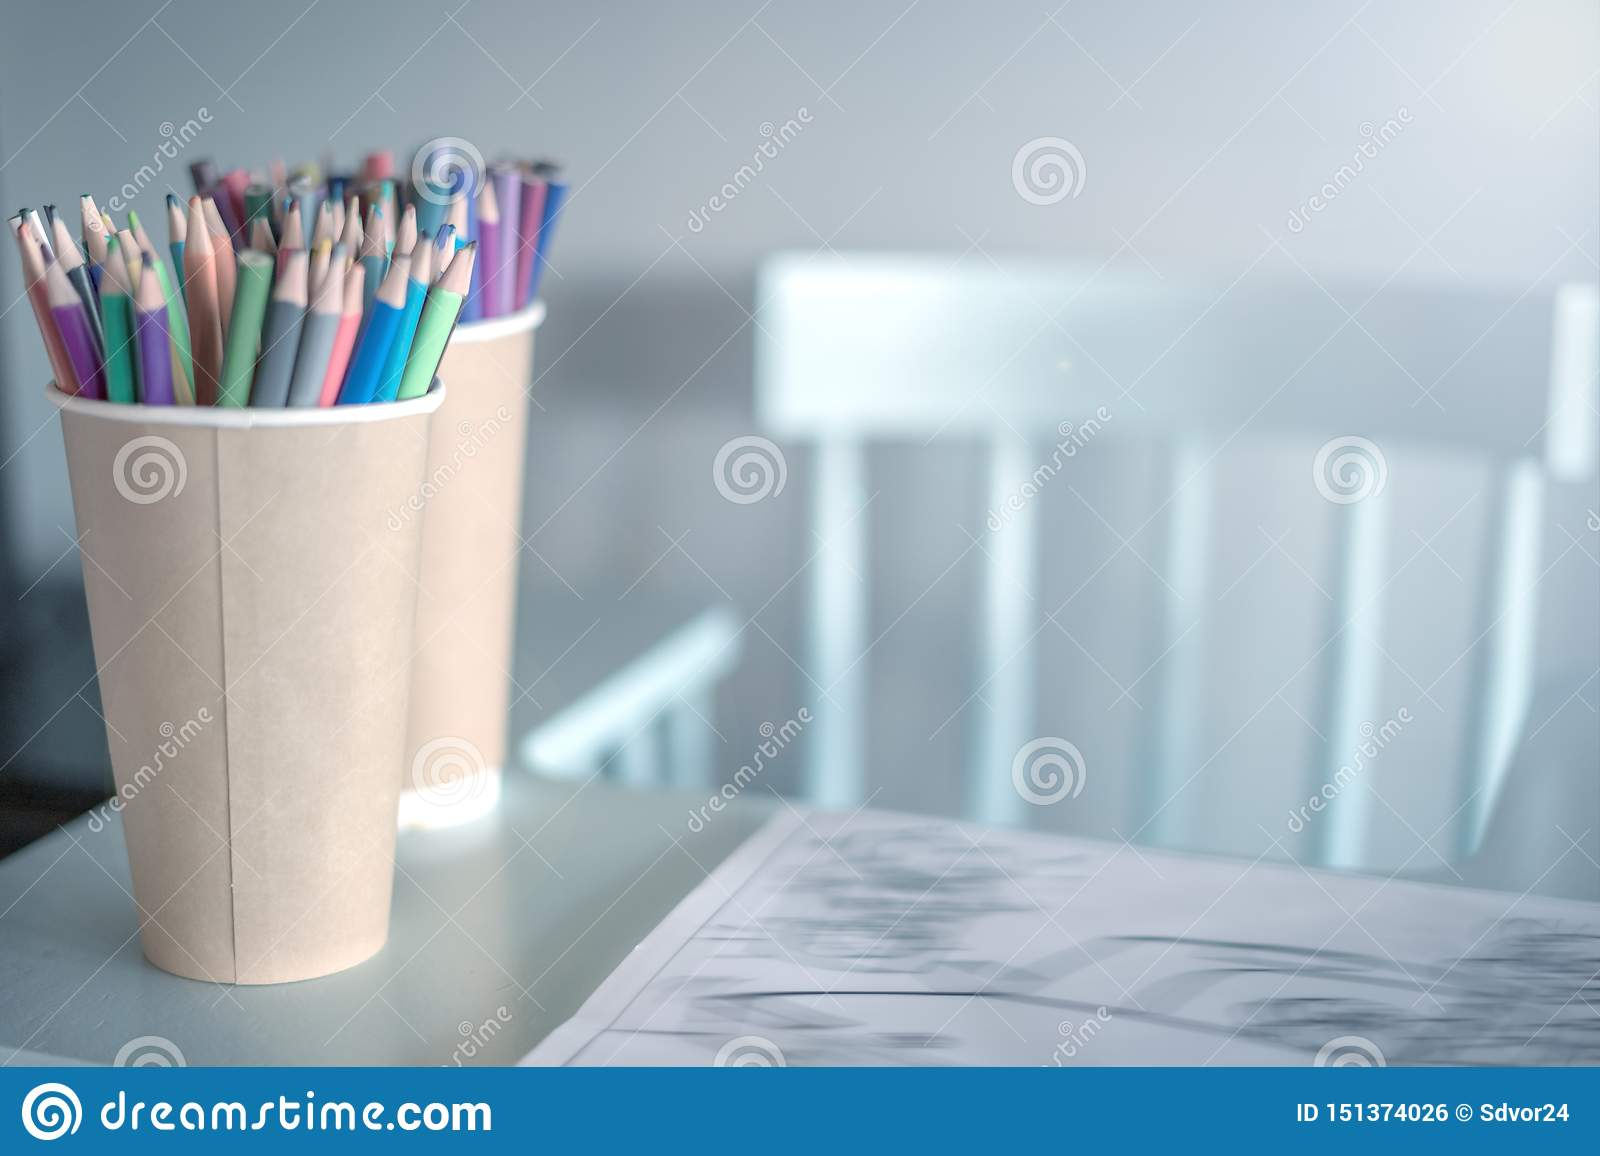 Stack of colored pencils in a glass on children`s table, next to a high chair ,left, A cozy place to draw for kids.